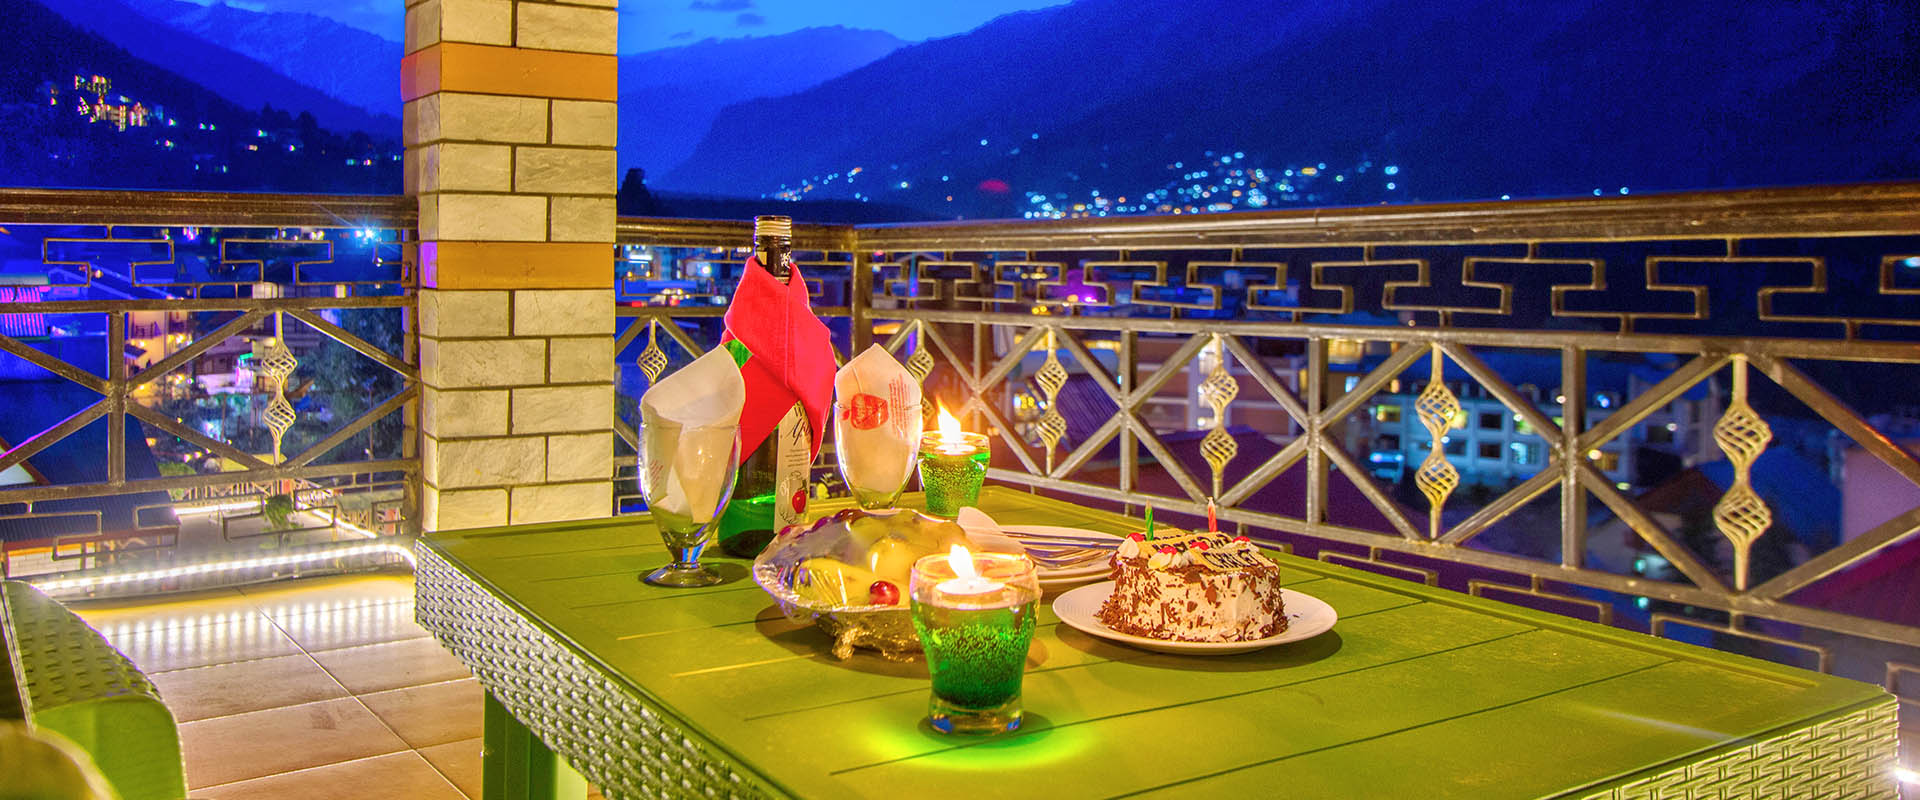 Candle Light Dinner Area, Apple Bud Cottages Manali - budget cottages in manali